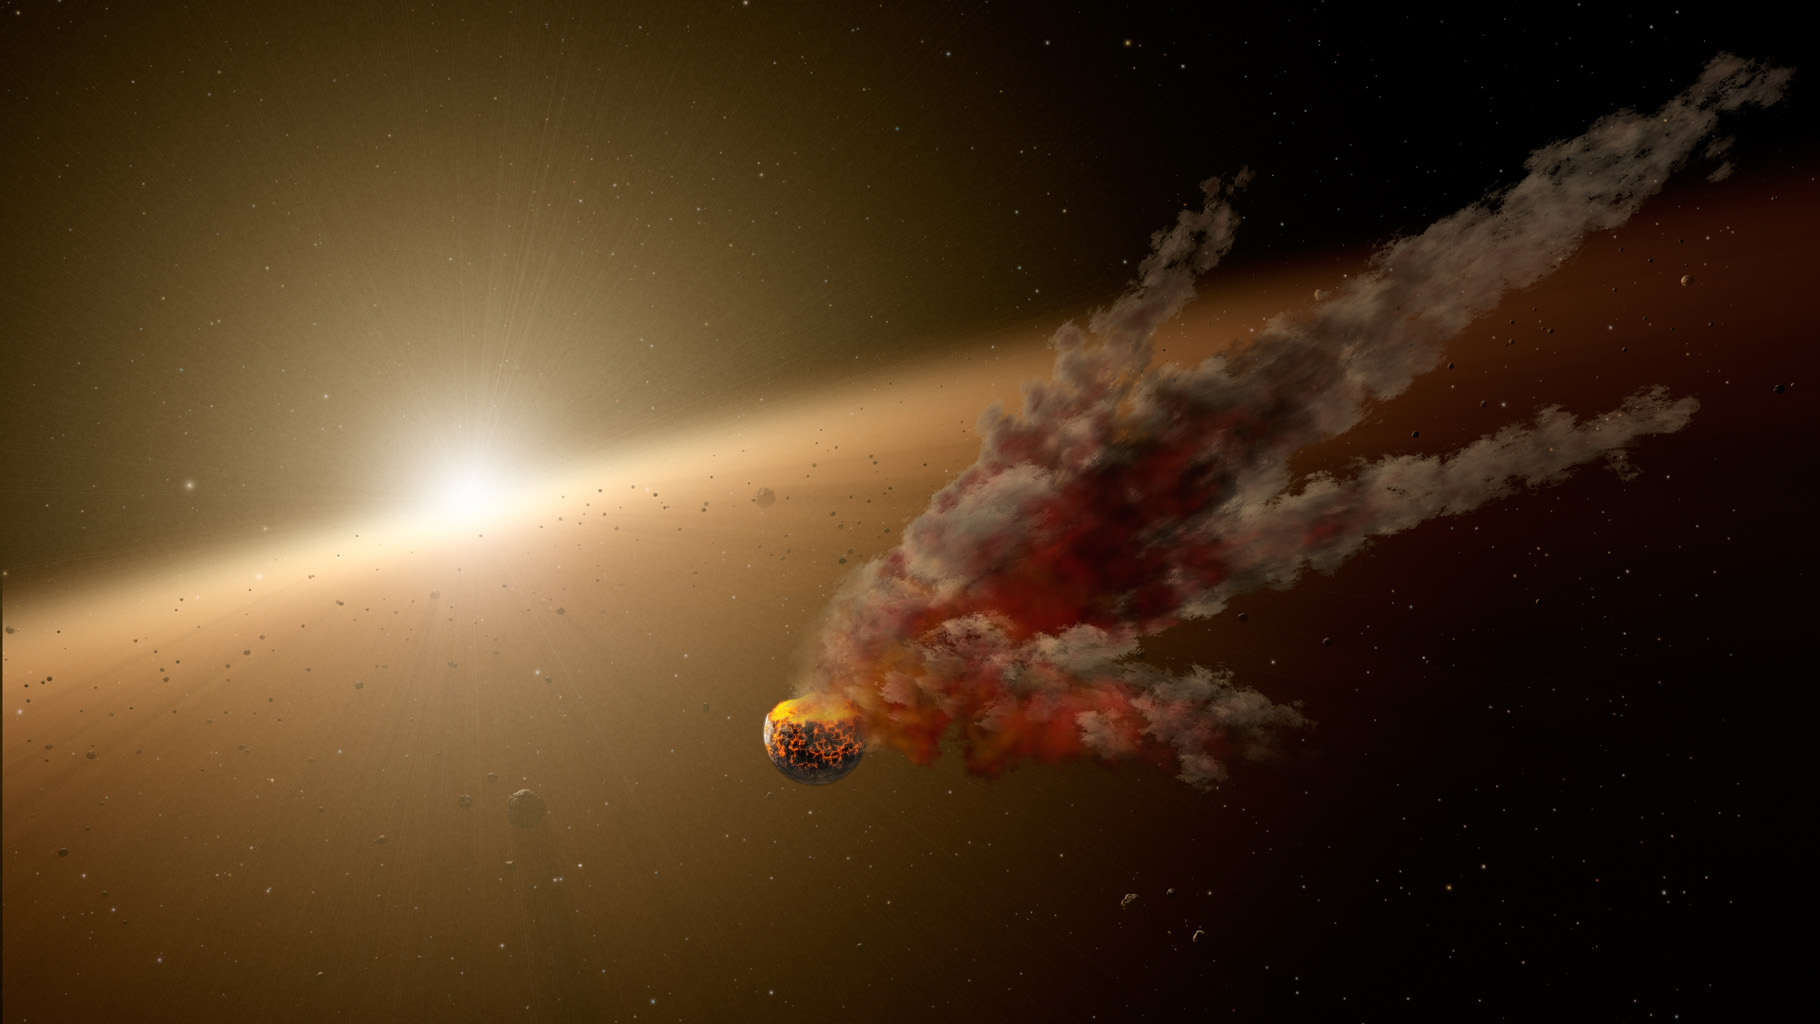 This artist's concept shows the immediate aftermath of a large asteroid impact around NGC 2547-ID8, a 35-million-year-old sun-like star thought to be forming rocky planets.